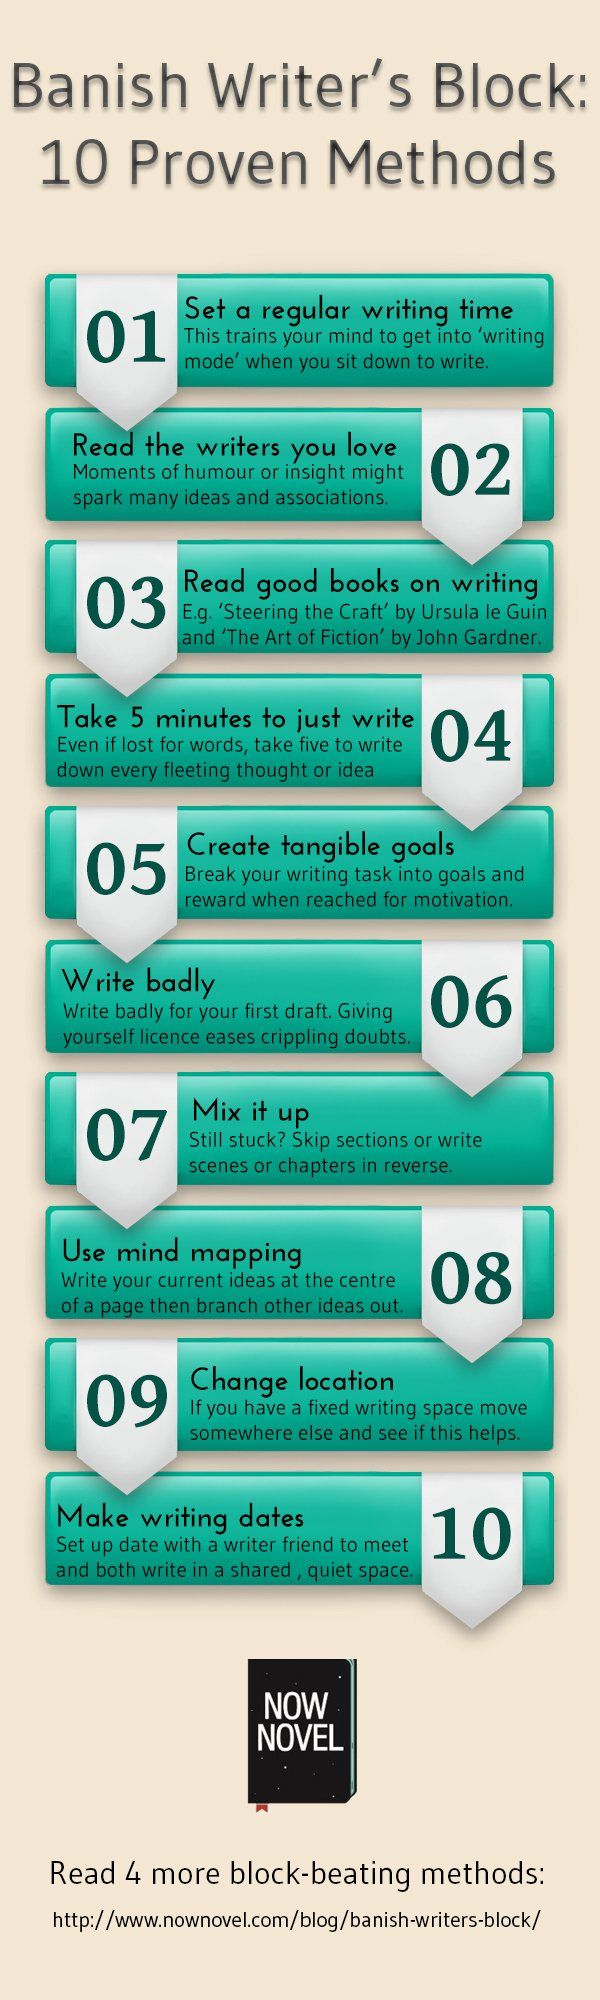 essay rules writing with outline format